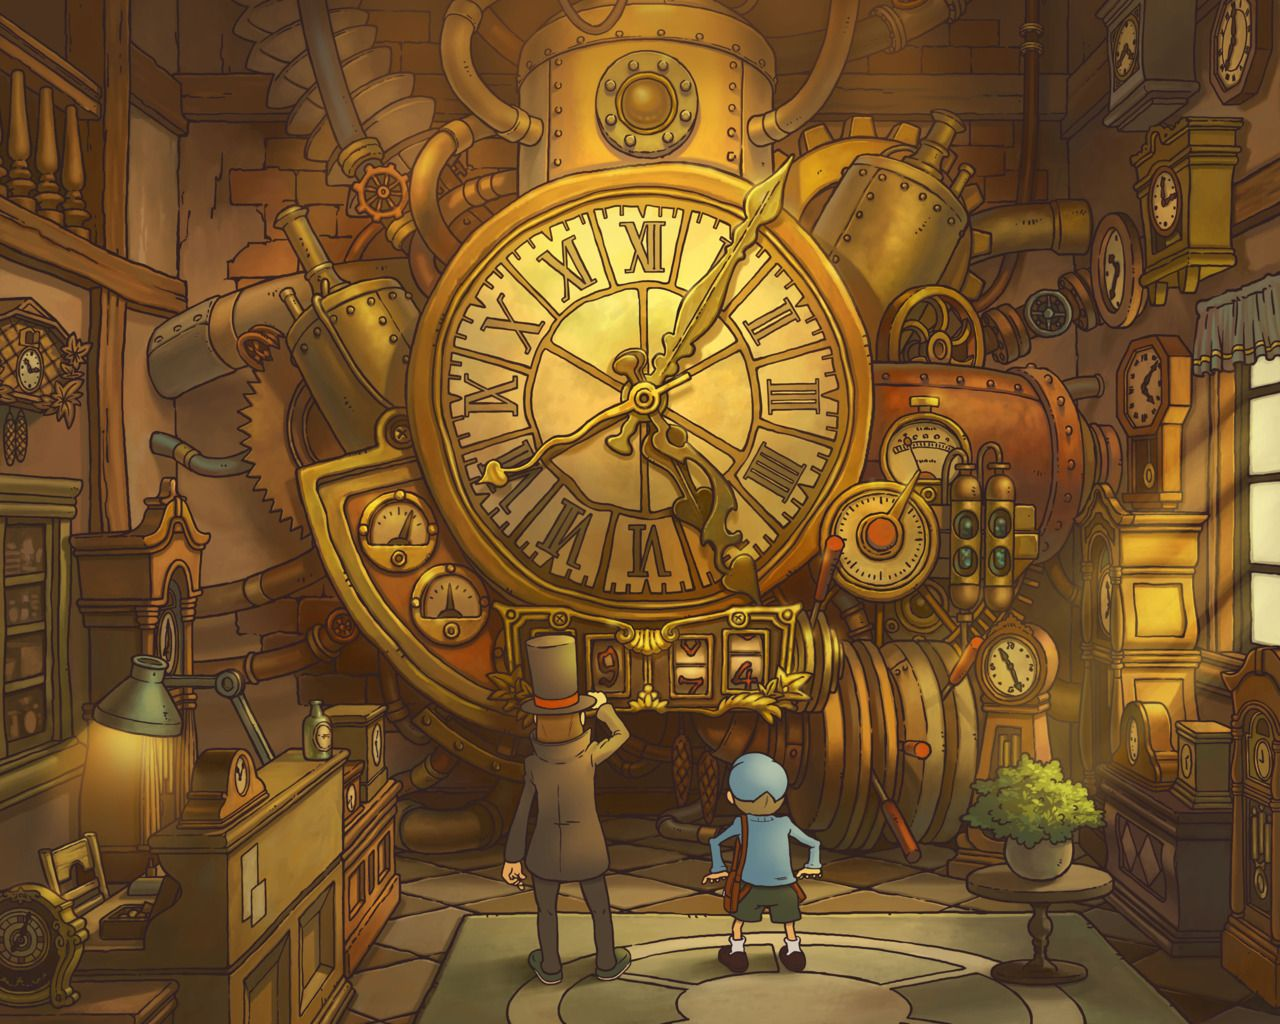 Professor Layton Is It Bad That I Cried At The End Of This Game